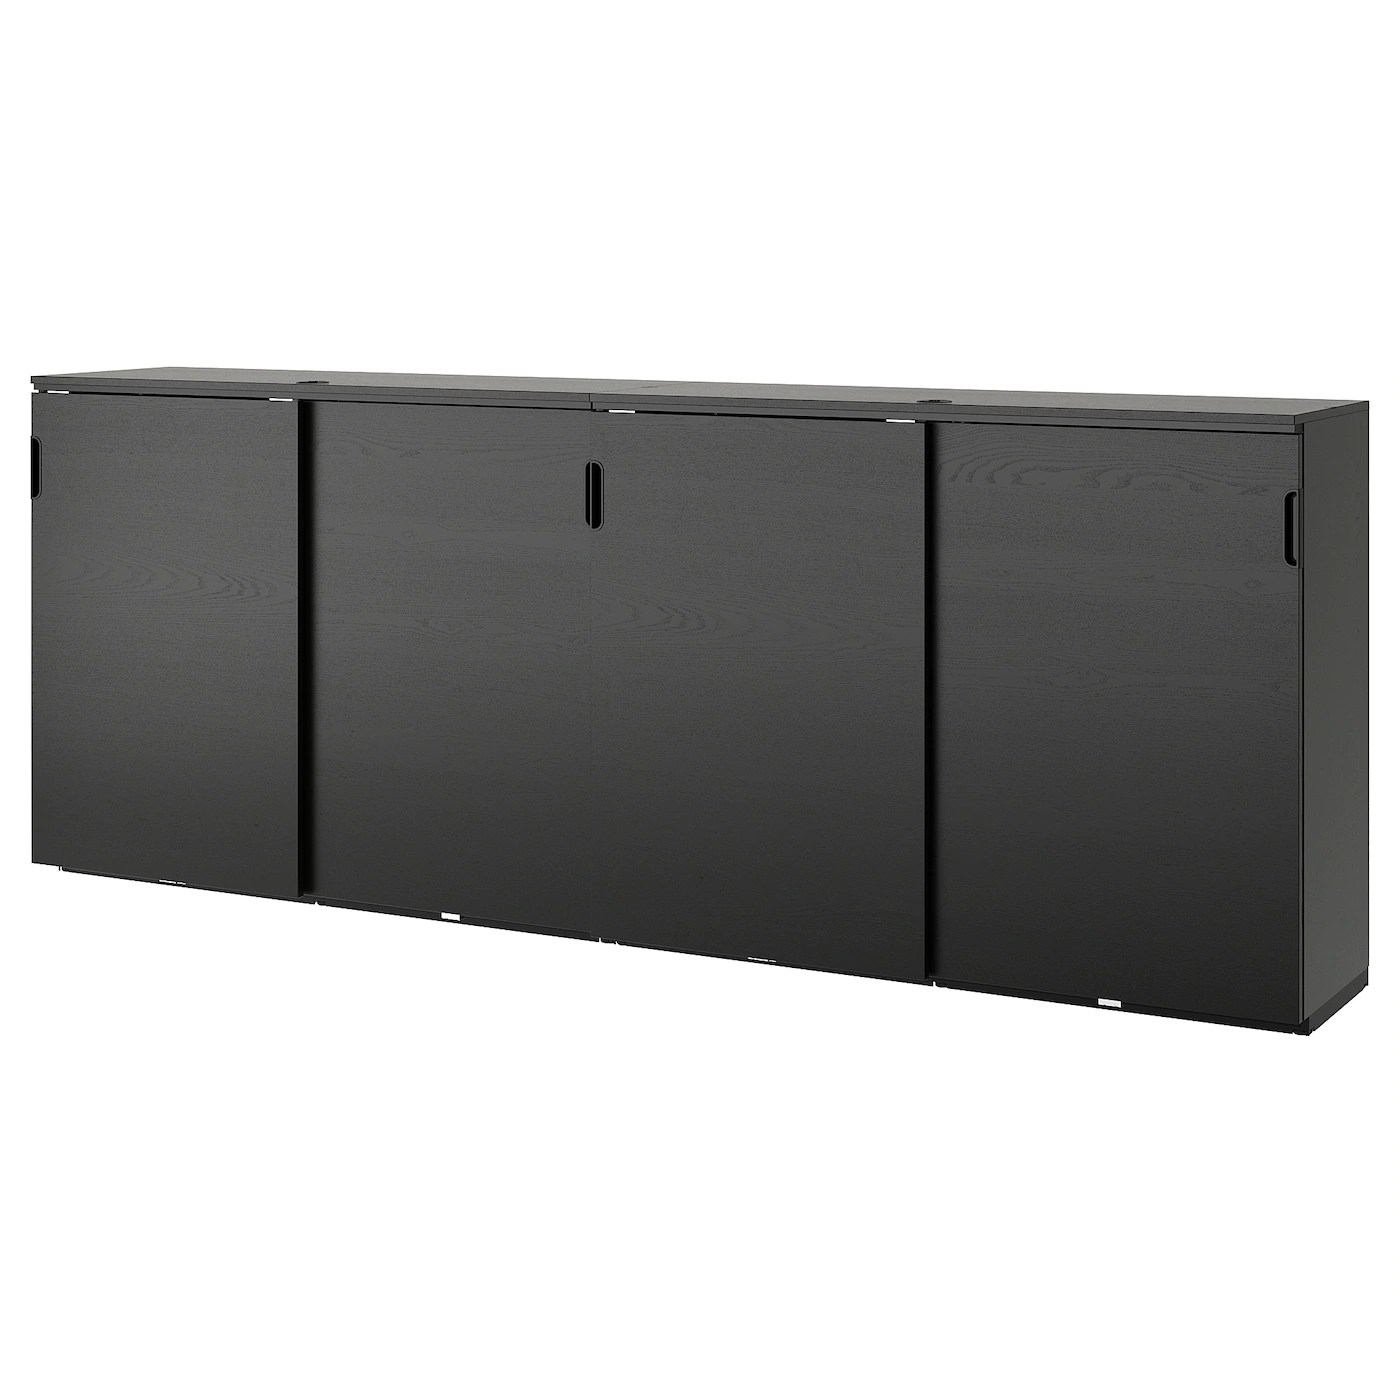 Ikea Galant Bureau Galant Storage Combination W Sliding Doors Black Stained Ash Veneer